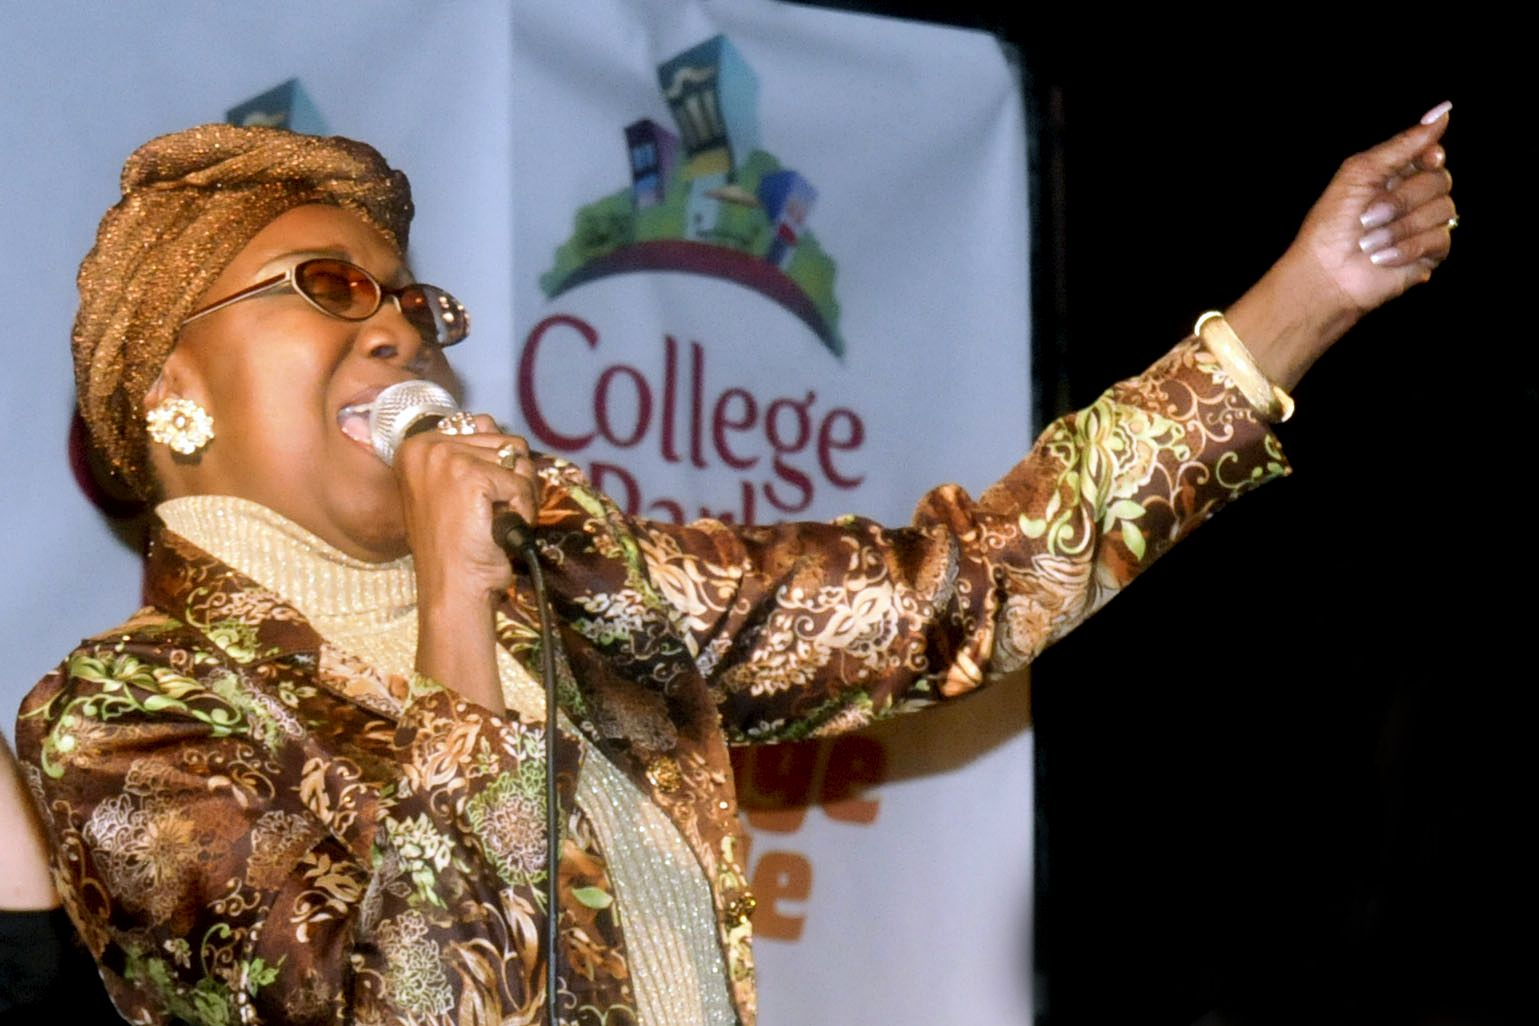 When the music strikes up this month at the College Park JazzFest, one of the voices to fill the air will be that of singer Jacqueline Jones. Although she was born in Gary, Indiana, she calls Orlan…